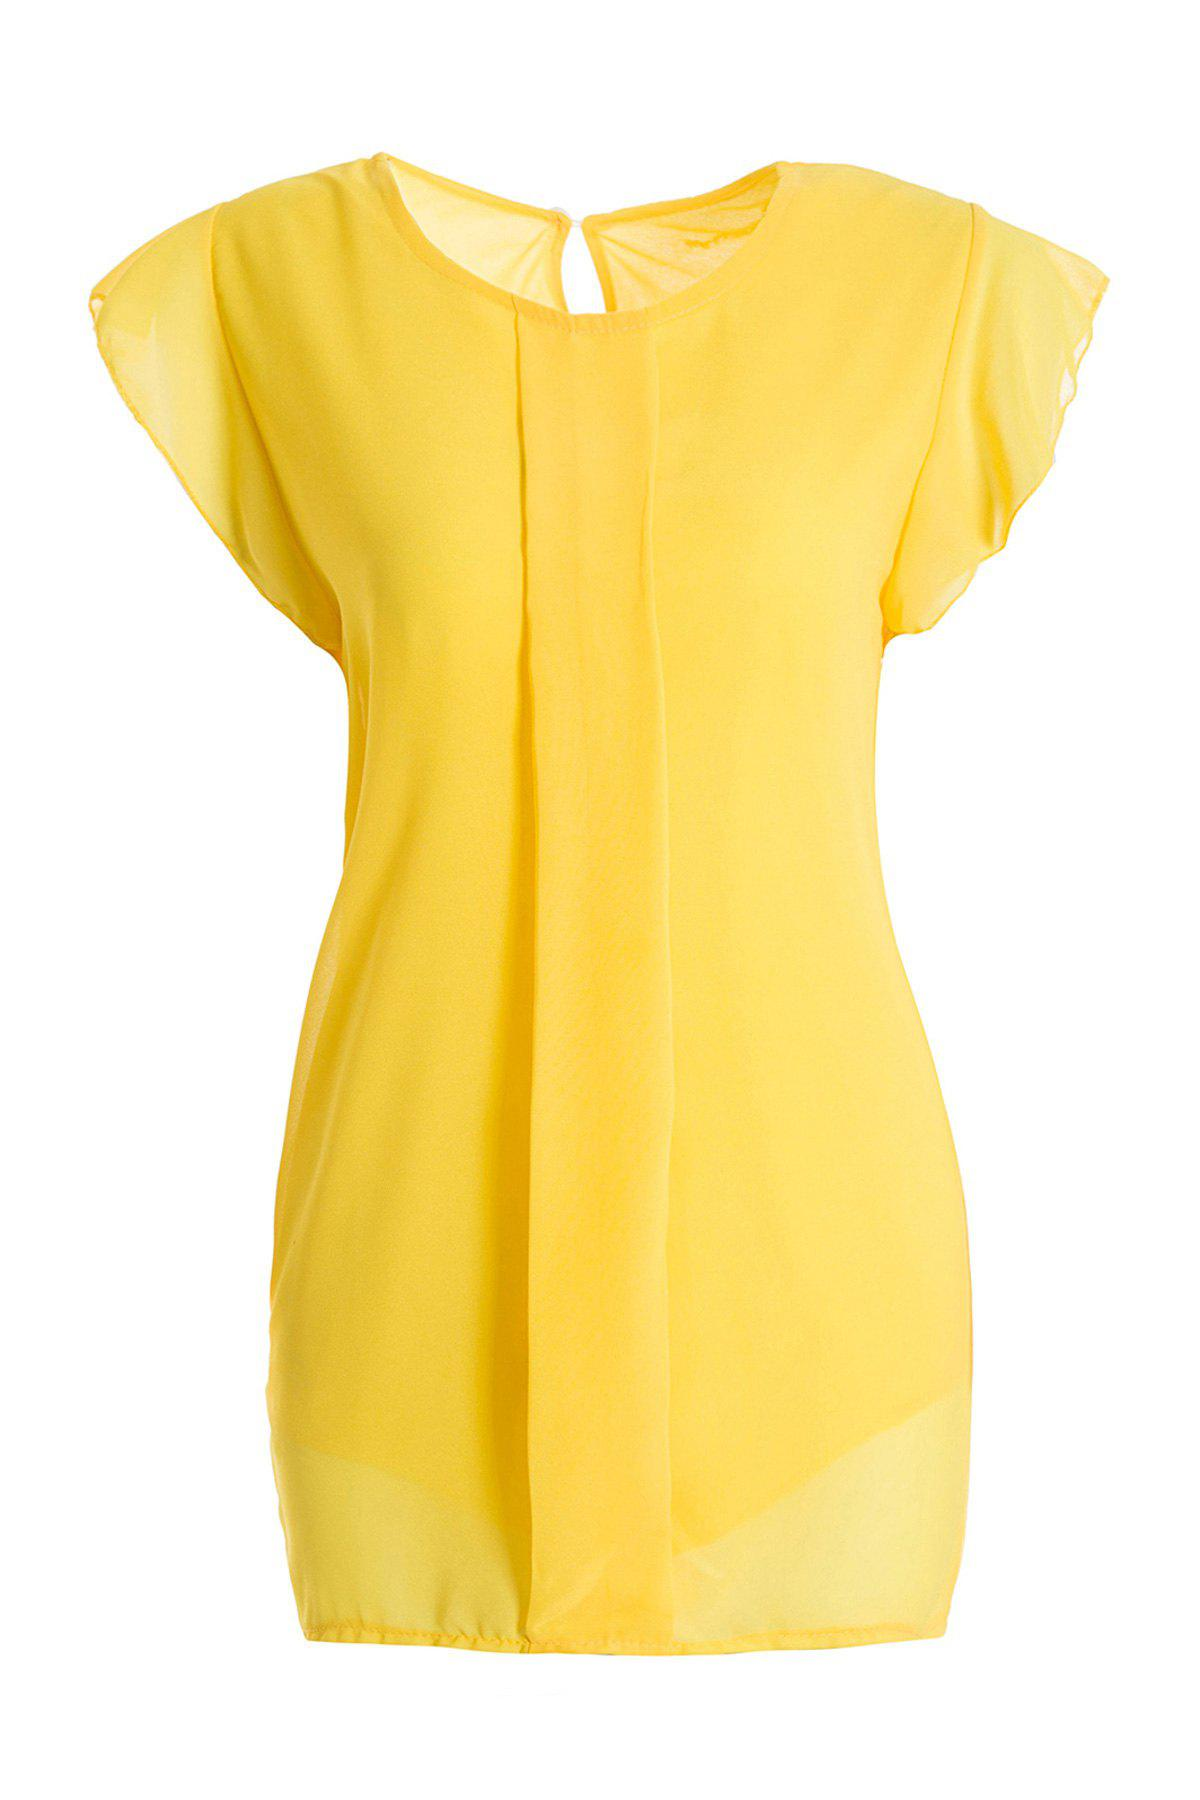 Sweet High-Low Hem Fly Sleeve Solid Color Womens Chiffon BlouseWOMEN<br><br>Size: ONE SIZE; Color: YELLOW; Style: Casual; Material: Polyester; Fabric Type: Chiffon; Shirt Length: Short; Sleeve Length: Short; Collar: Round Neck; Pattern Type: Solid; Embellishment: Pleated; Season: Summer; Weight: 0.180kg; Package Contents: 1 x Blouse;